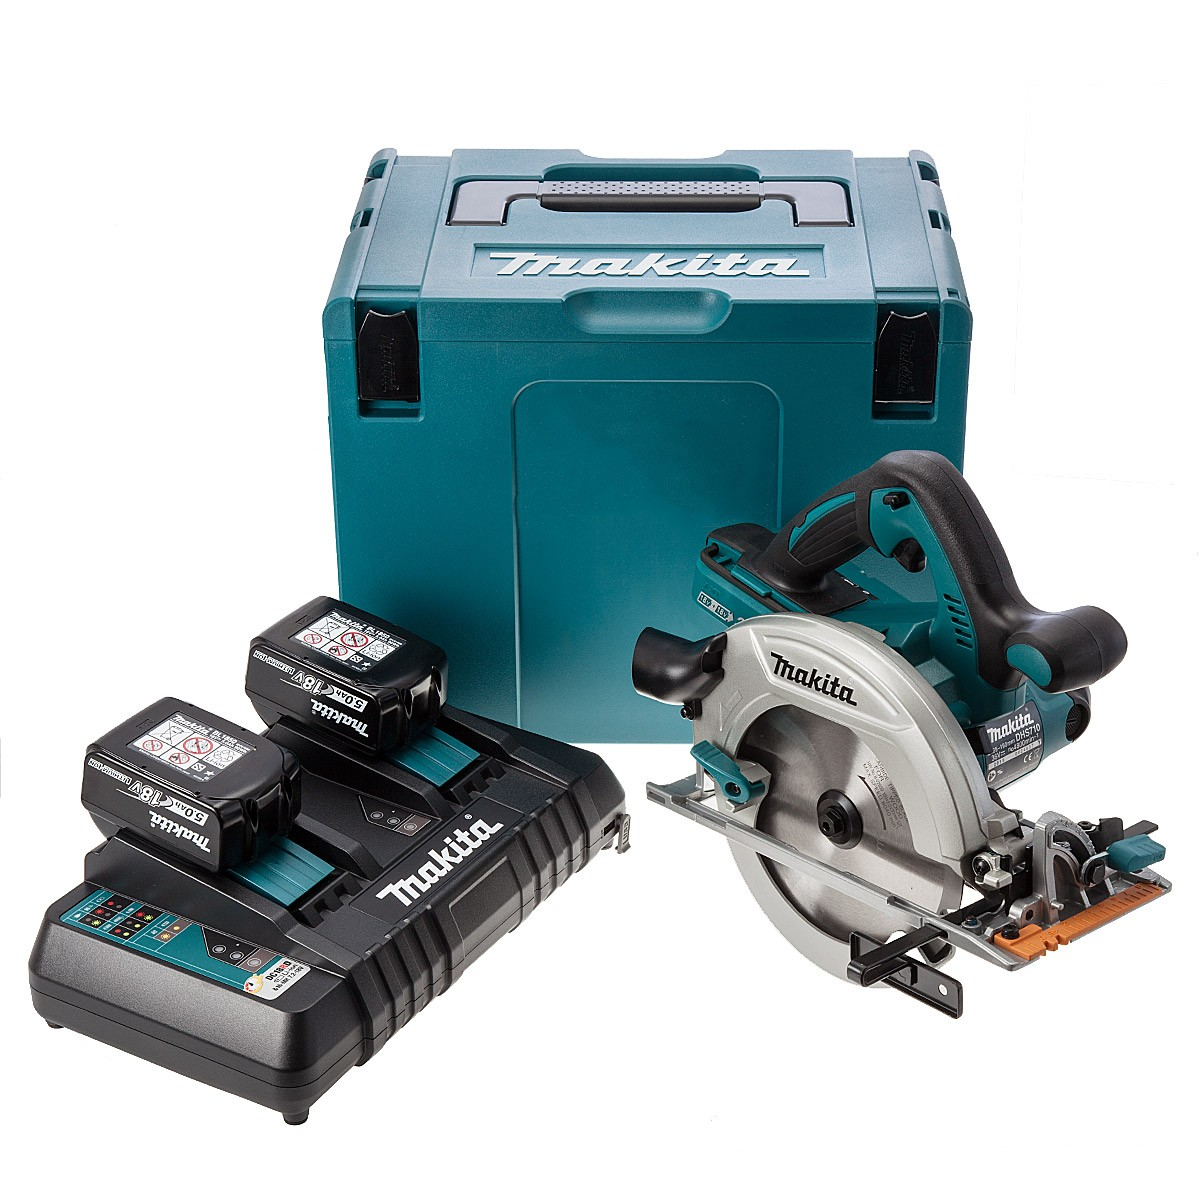 Makita Dlx2084pmj 18v Cordless 2 Piece Kit Dhp456 Combi